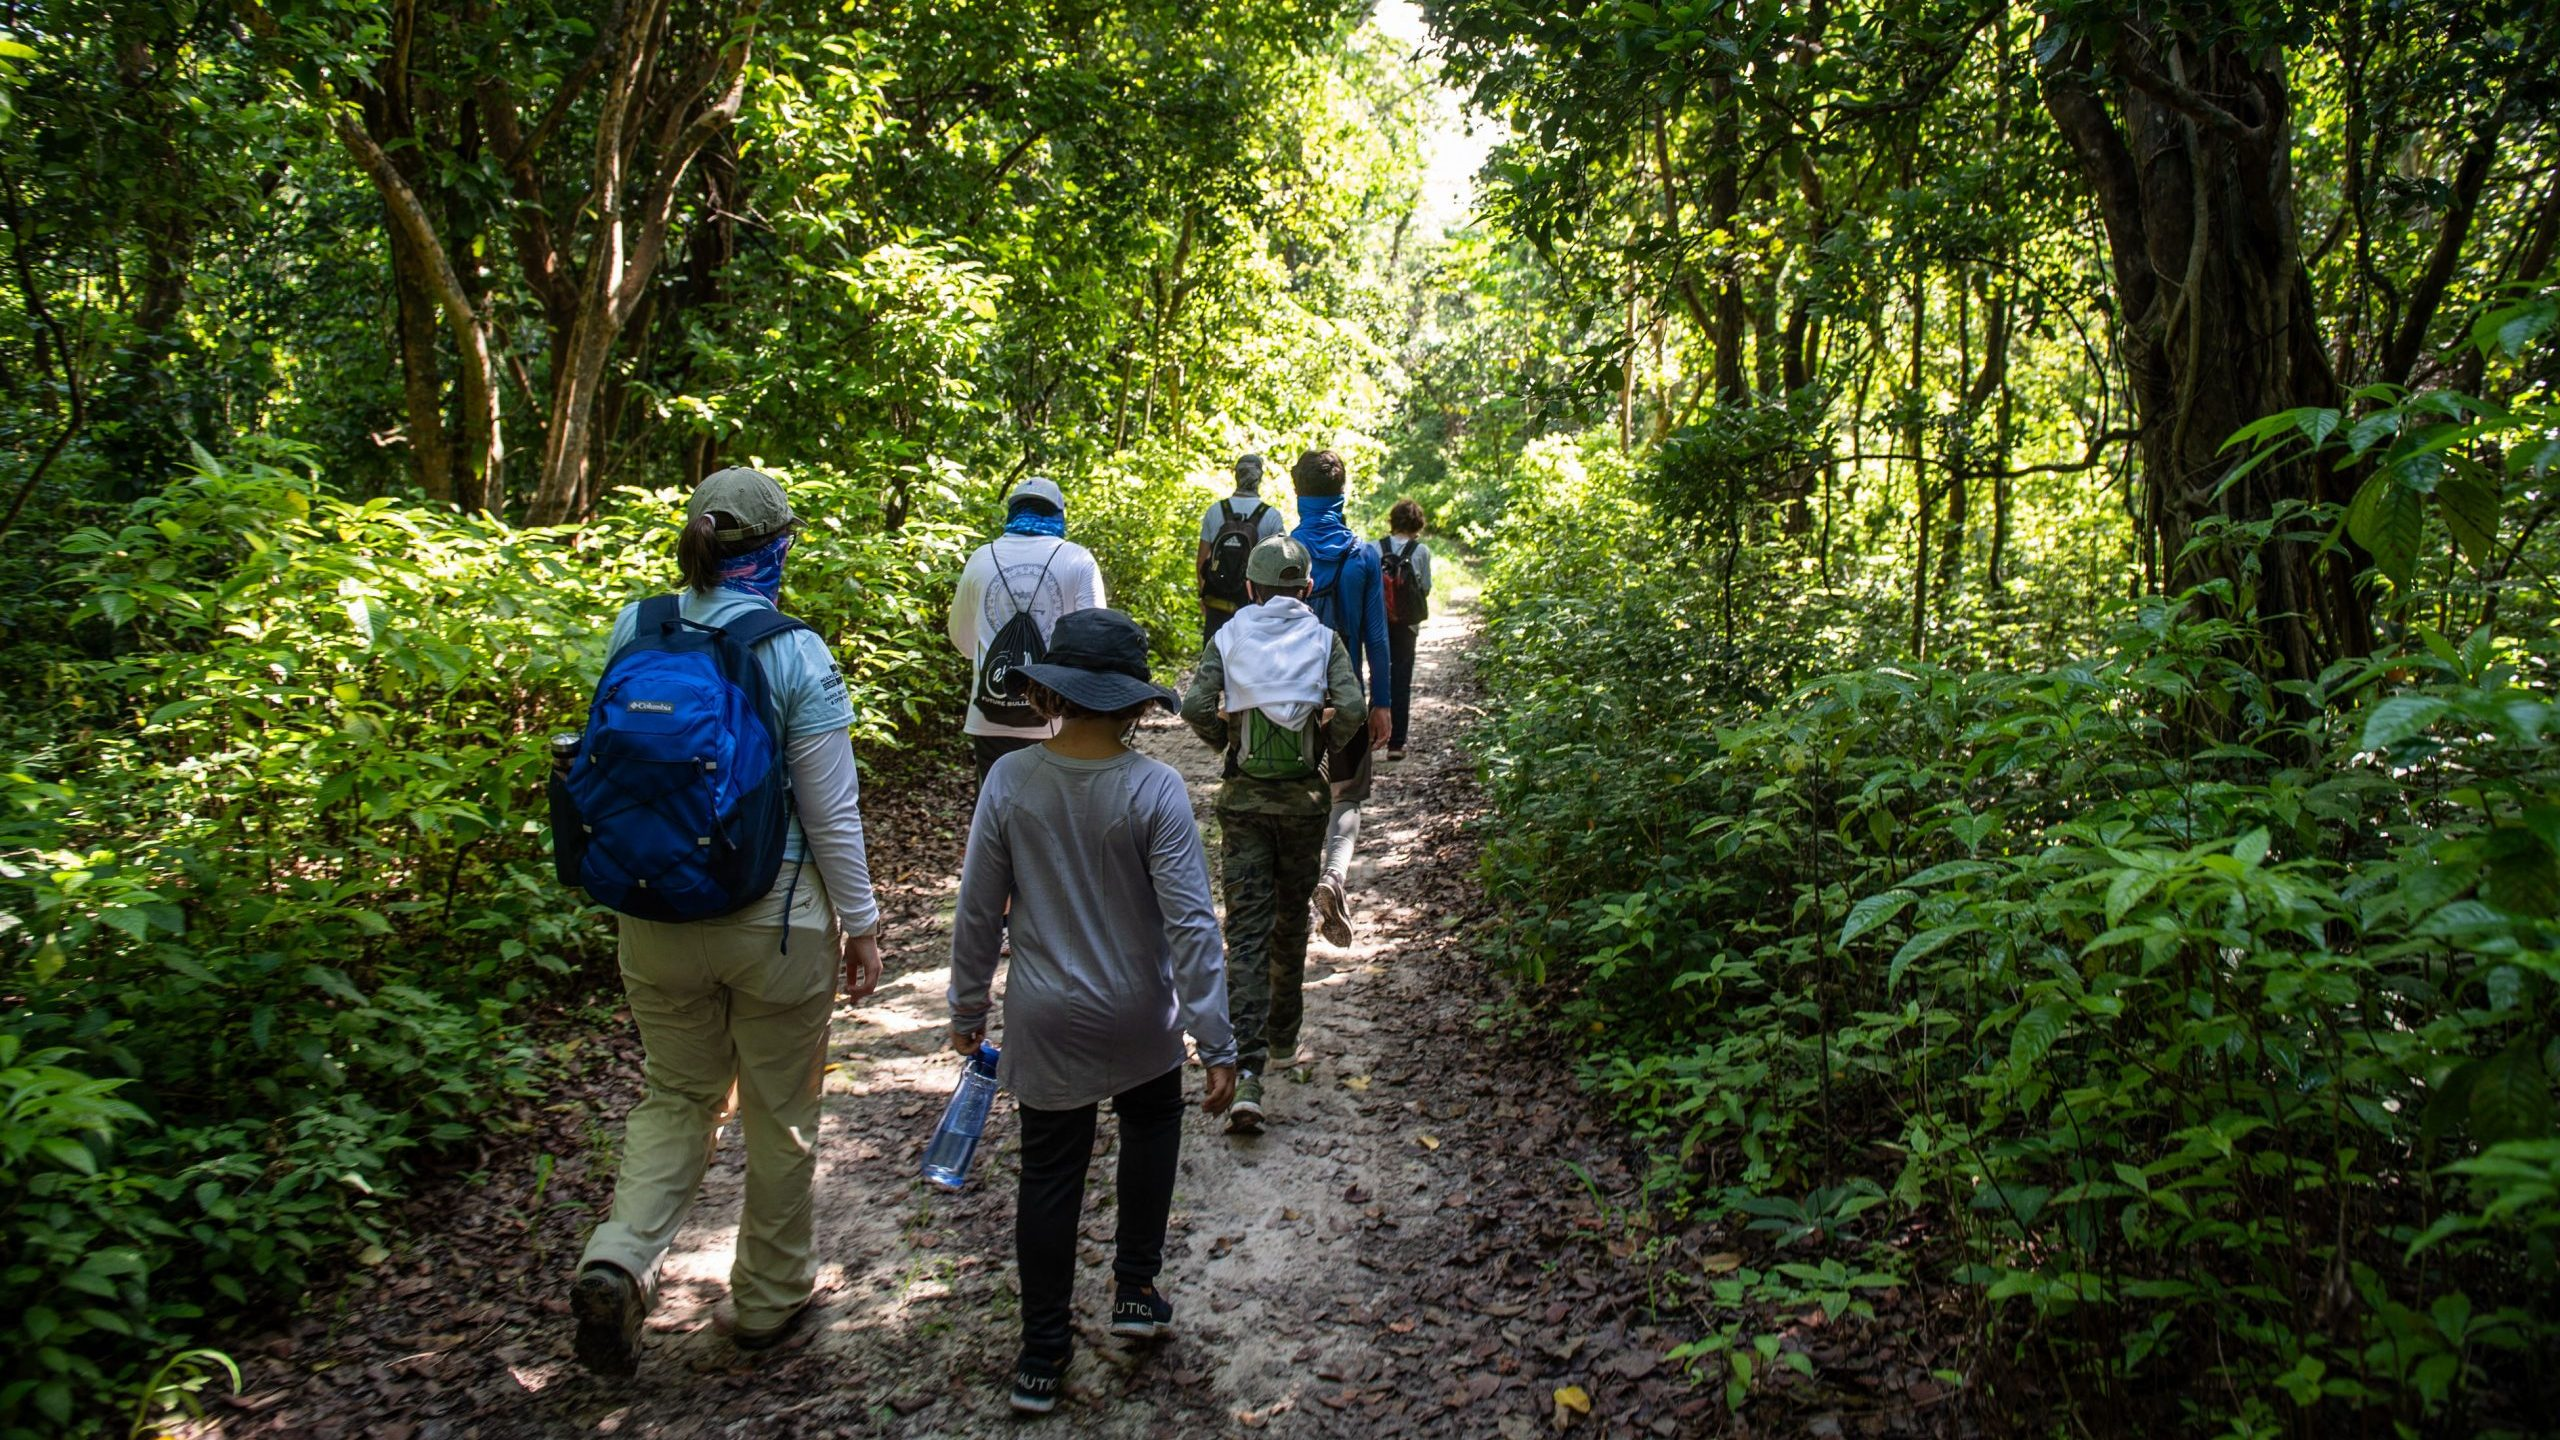 Small group of campers hiking through the Deering Estate Nature Preserve